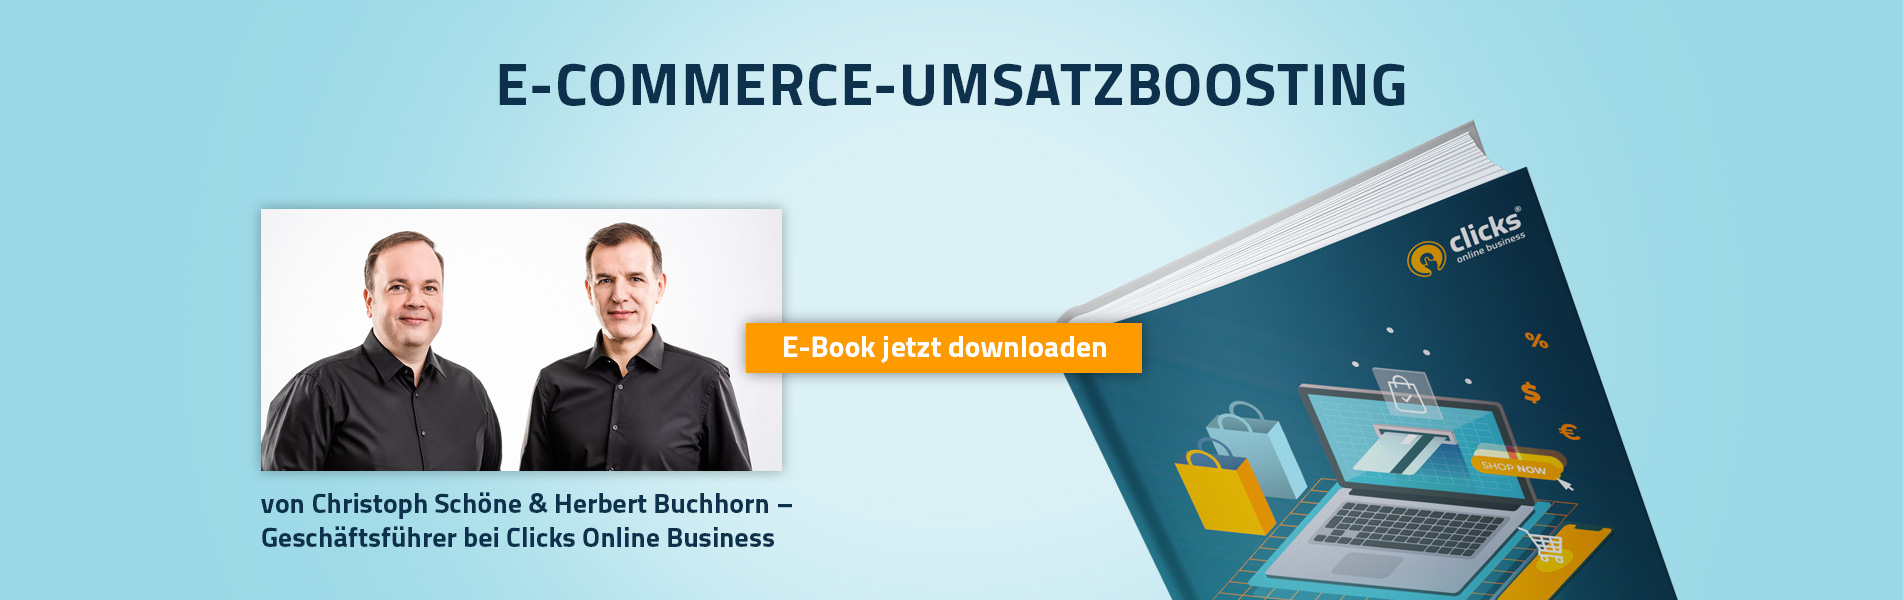 E-Commerce-Umsatzboosting